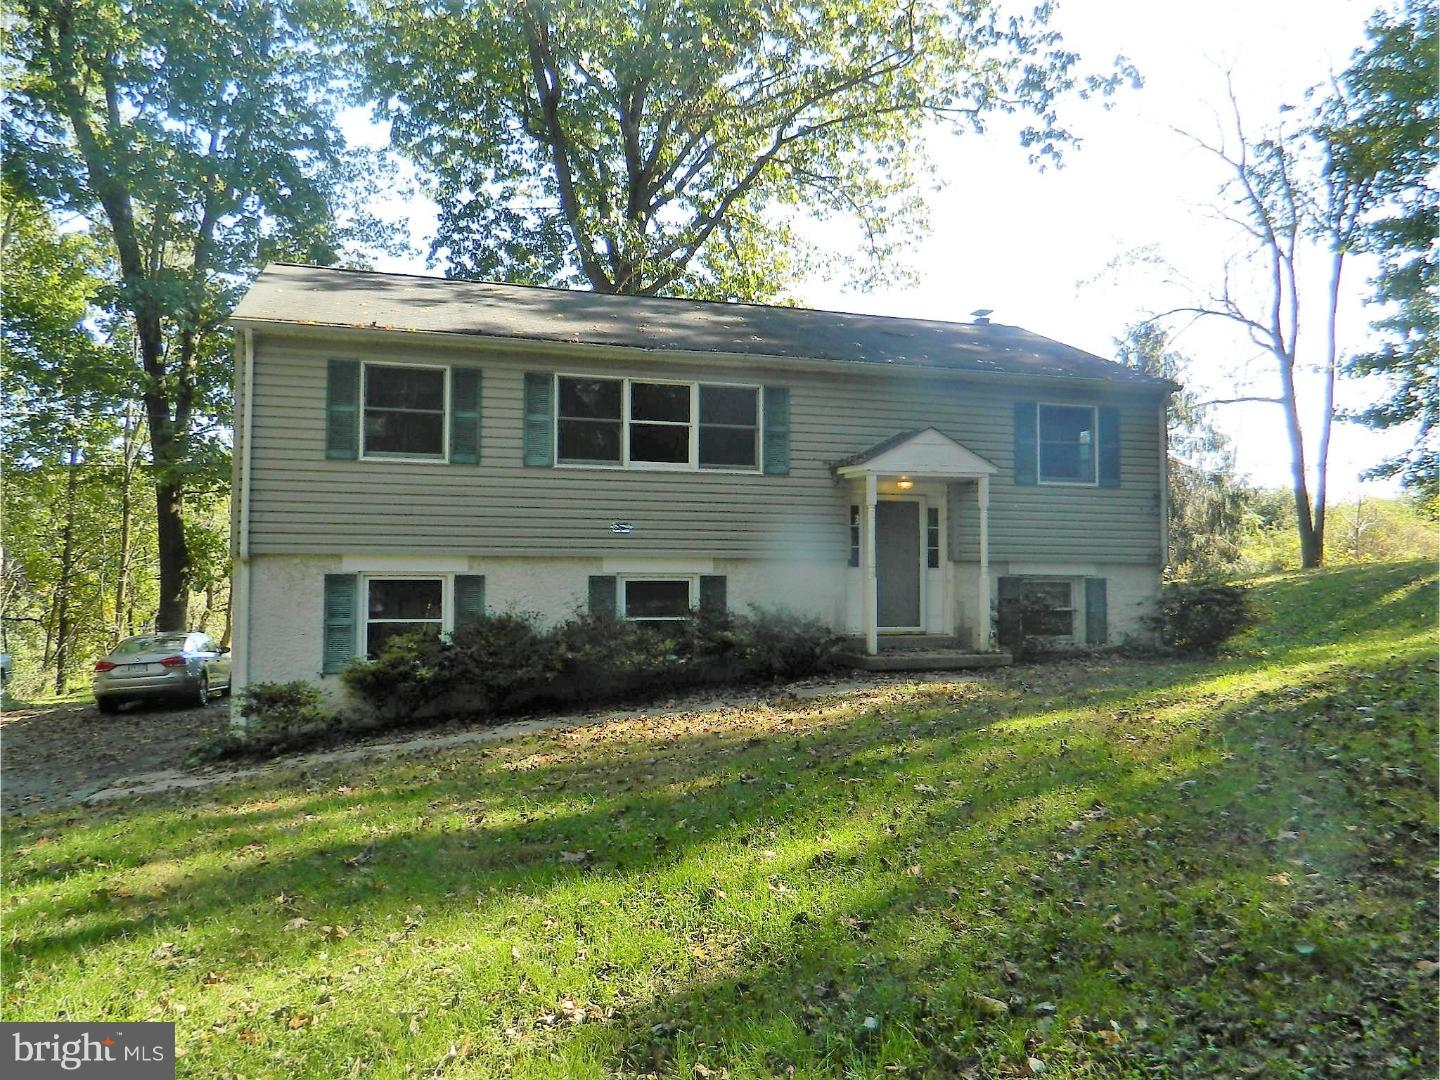 715 Timber Lane West Chester, PA 19380